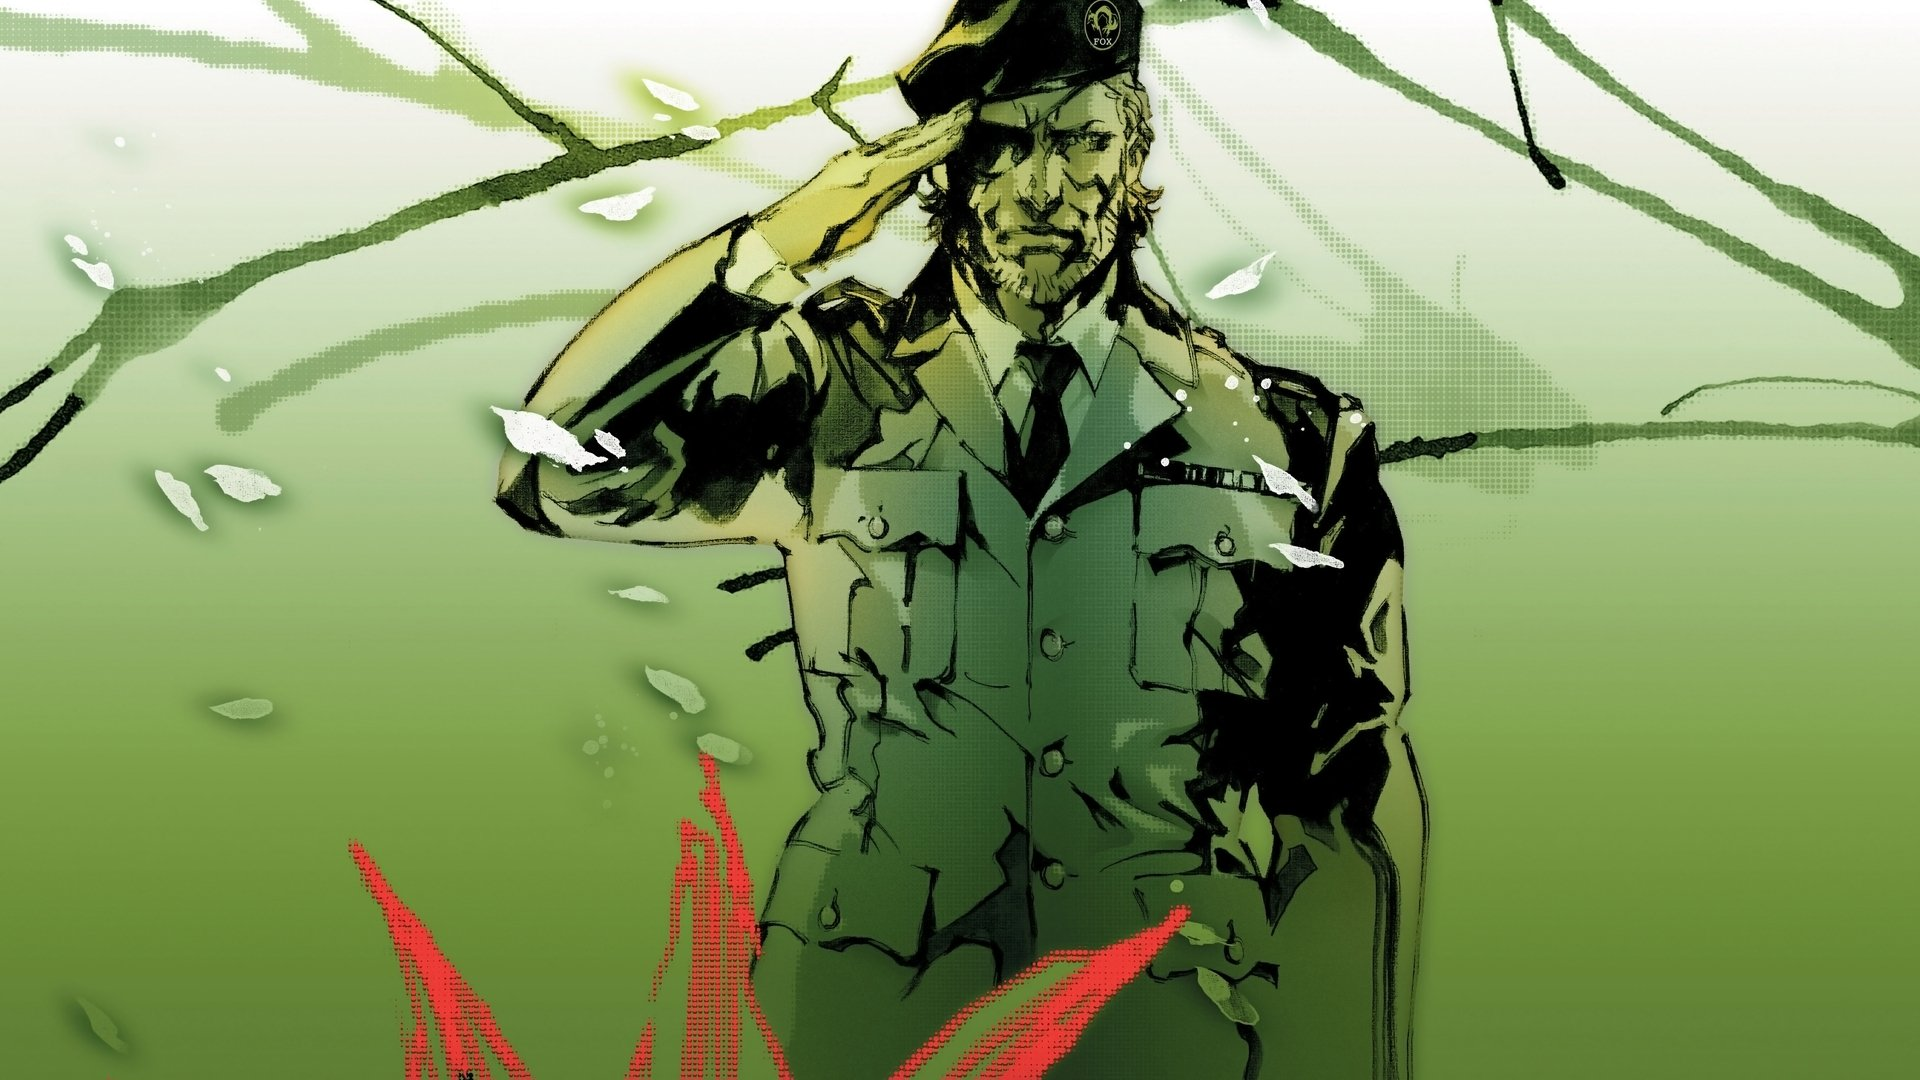 Image result for Metal Gear Solid 3 snake eater 1920x1080 boxart